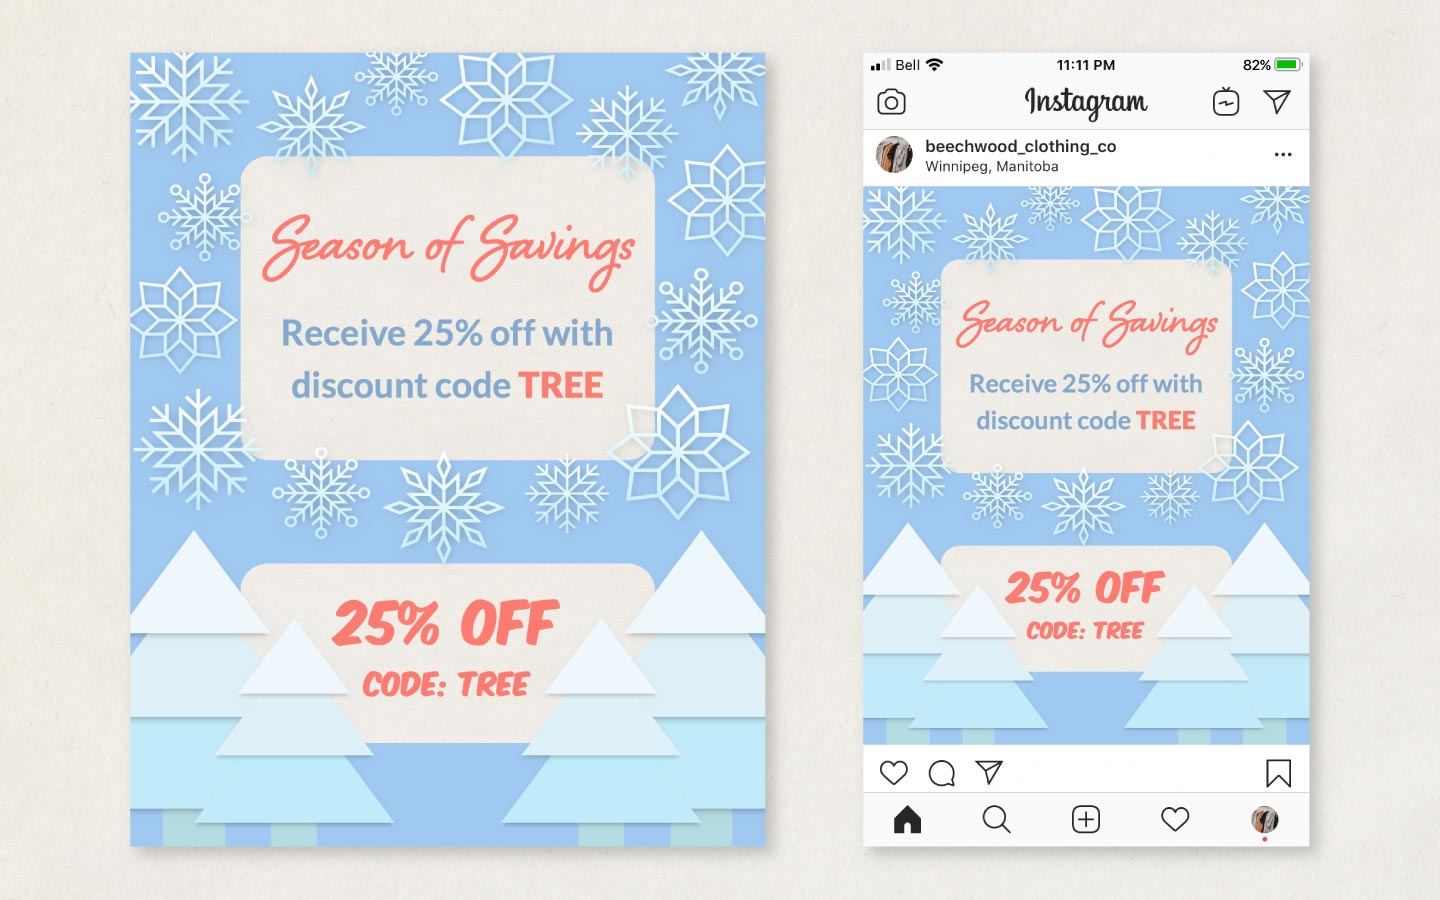 How to create a promo for social media with ImageFramer